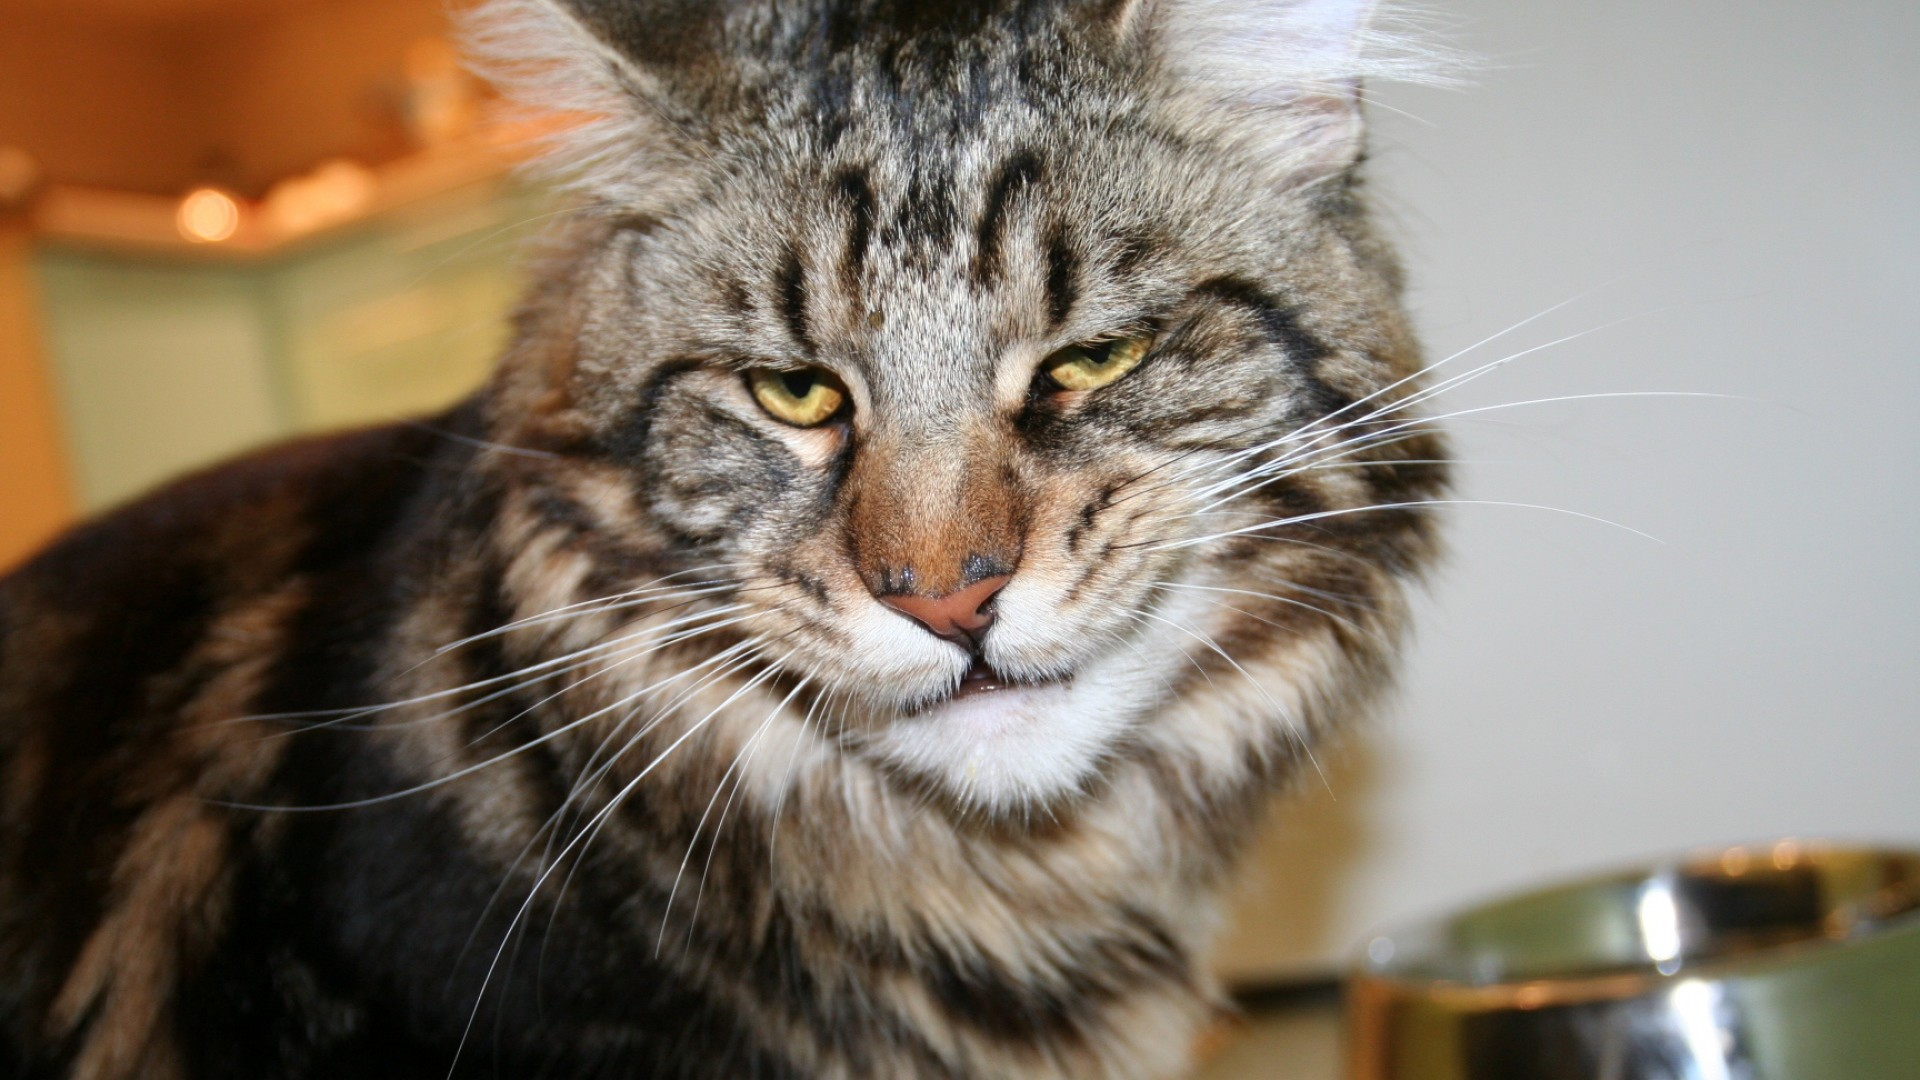 Wallpaper cat, maine coon, face, frustration